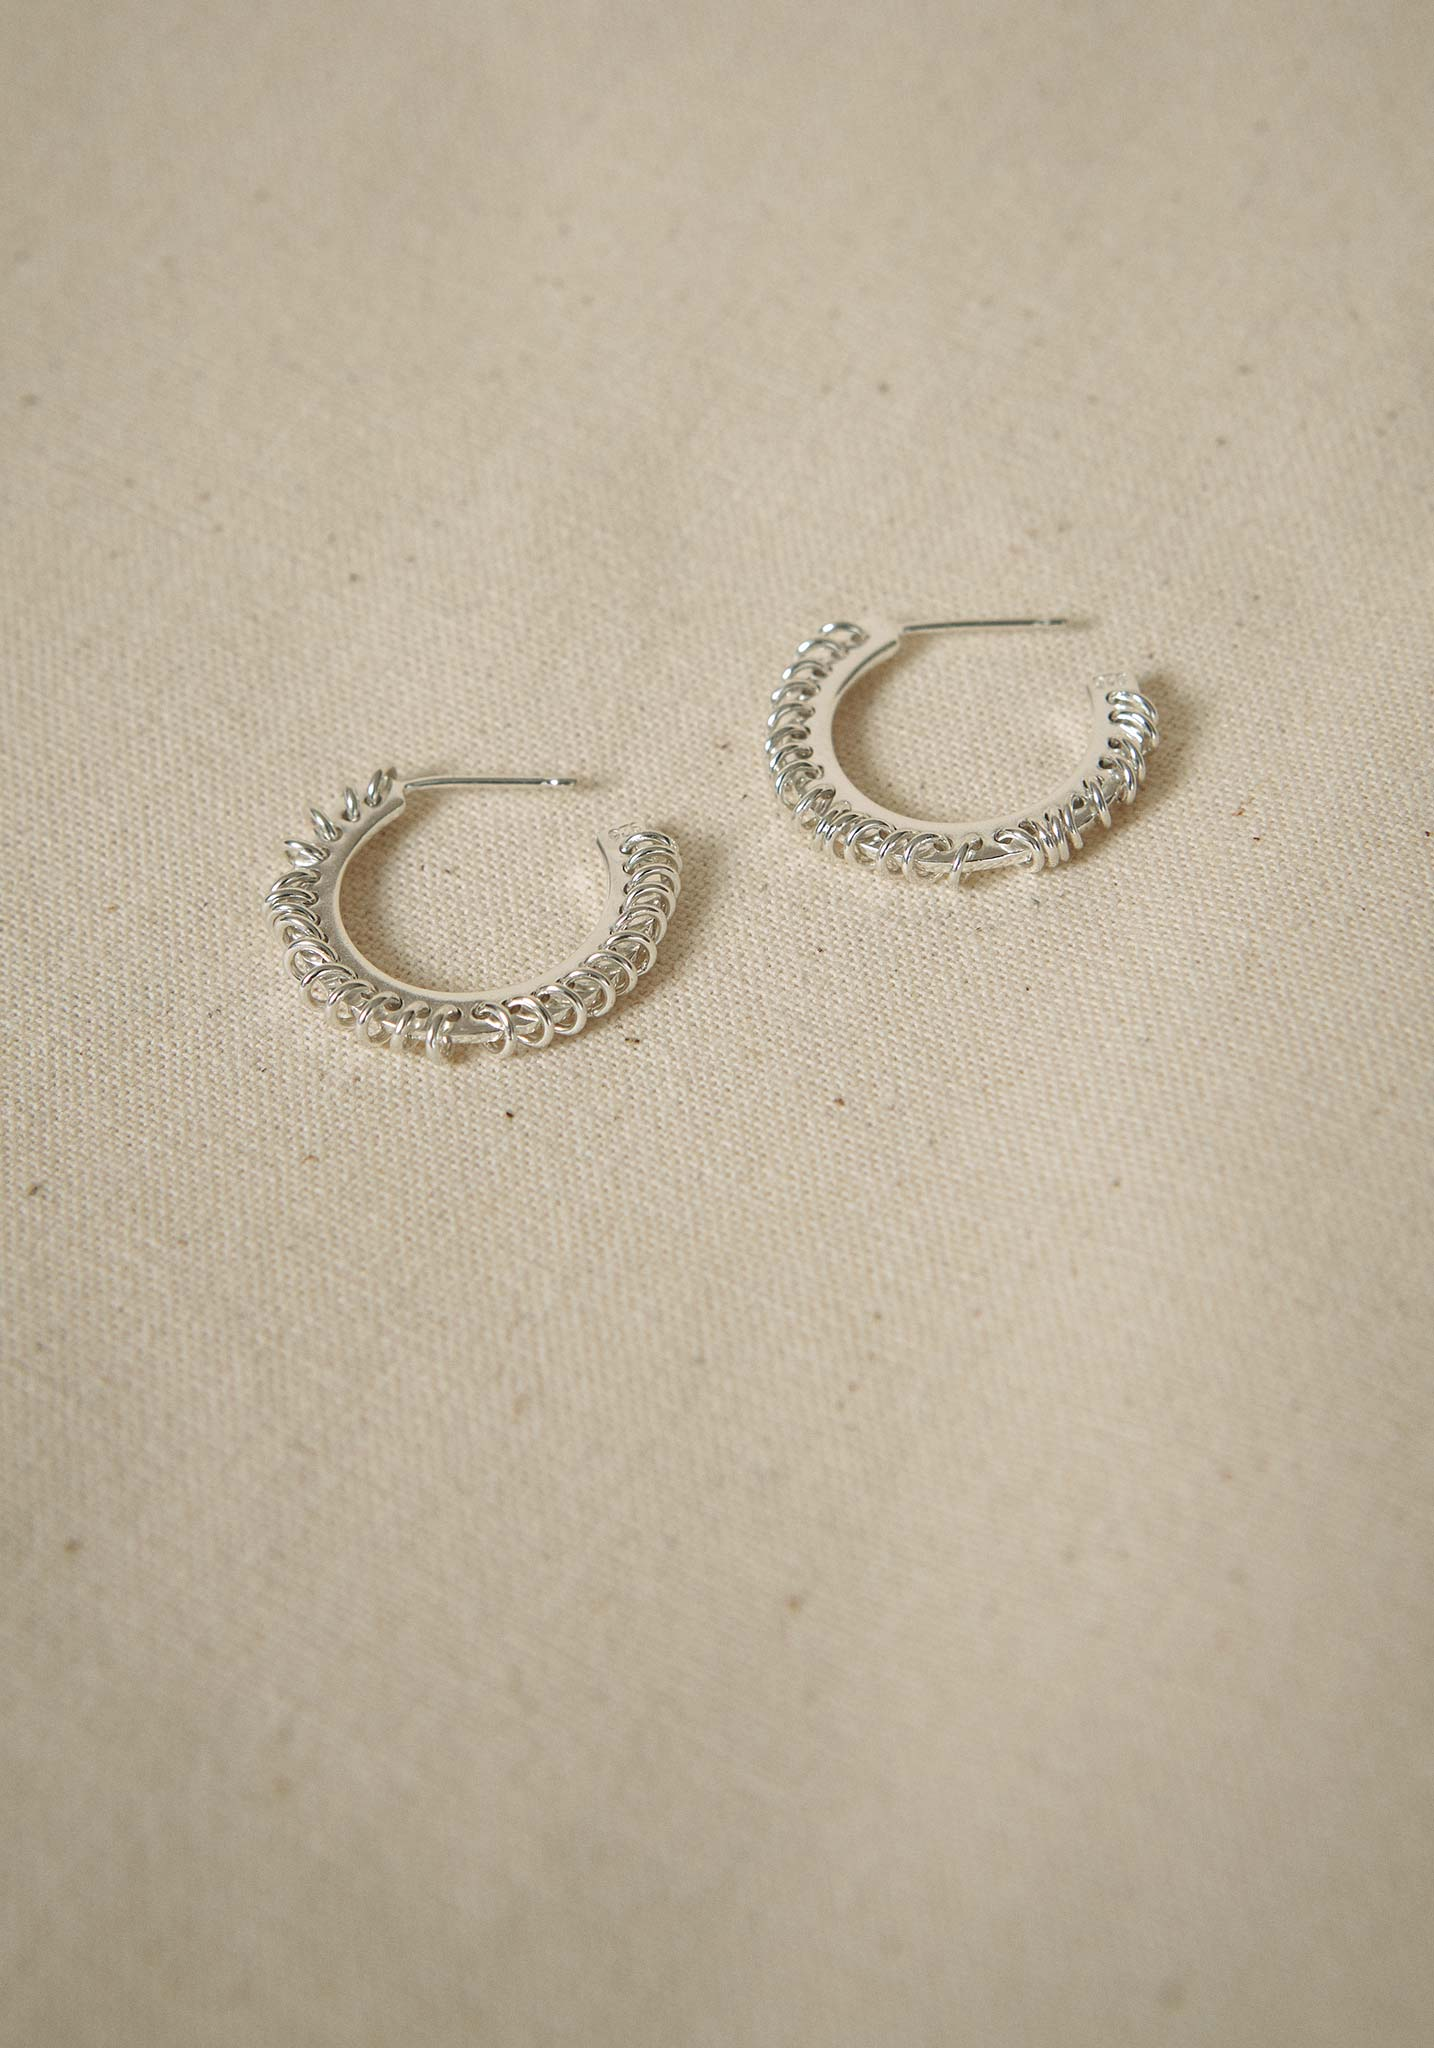 Zohra Rahman, Sterling Silver Medium Stitched Hoop Earrings